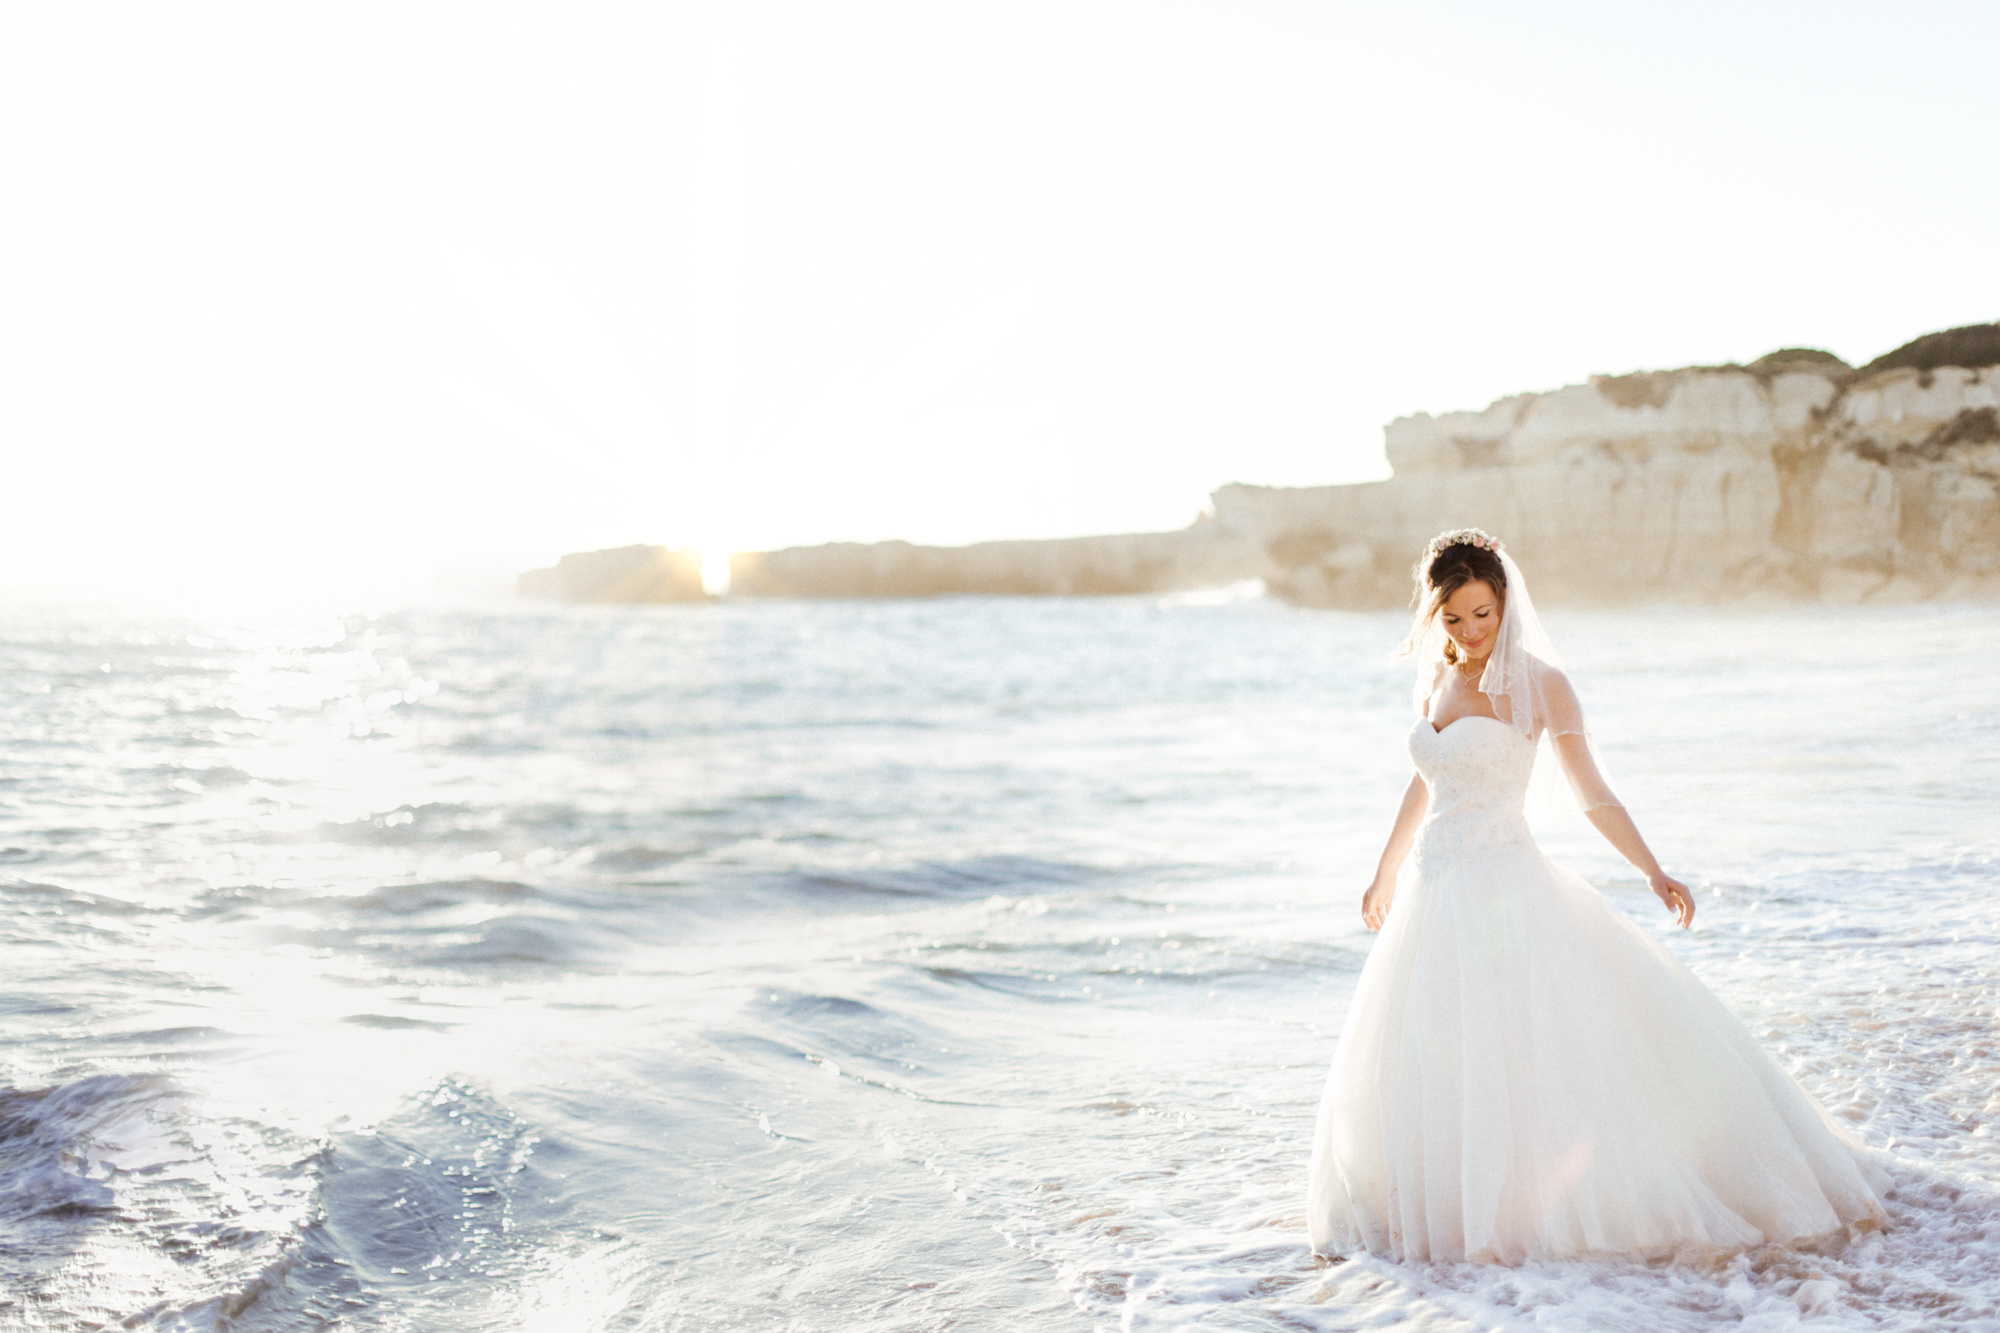 Destination Wedding | Albufeira, Portugal